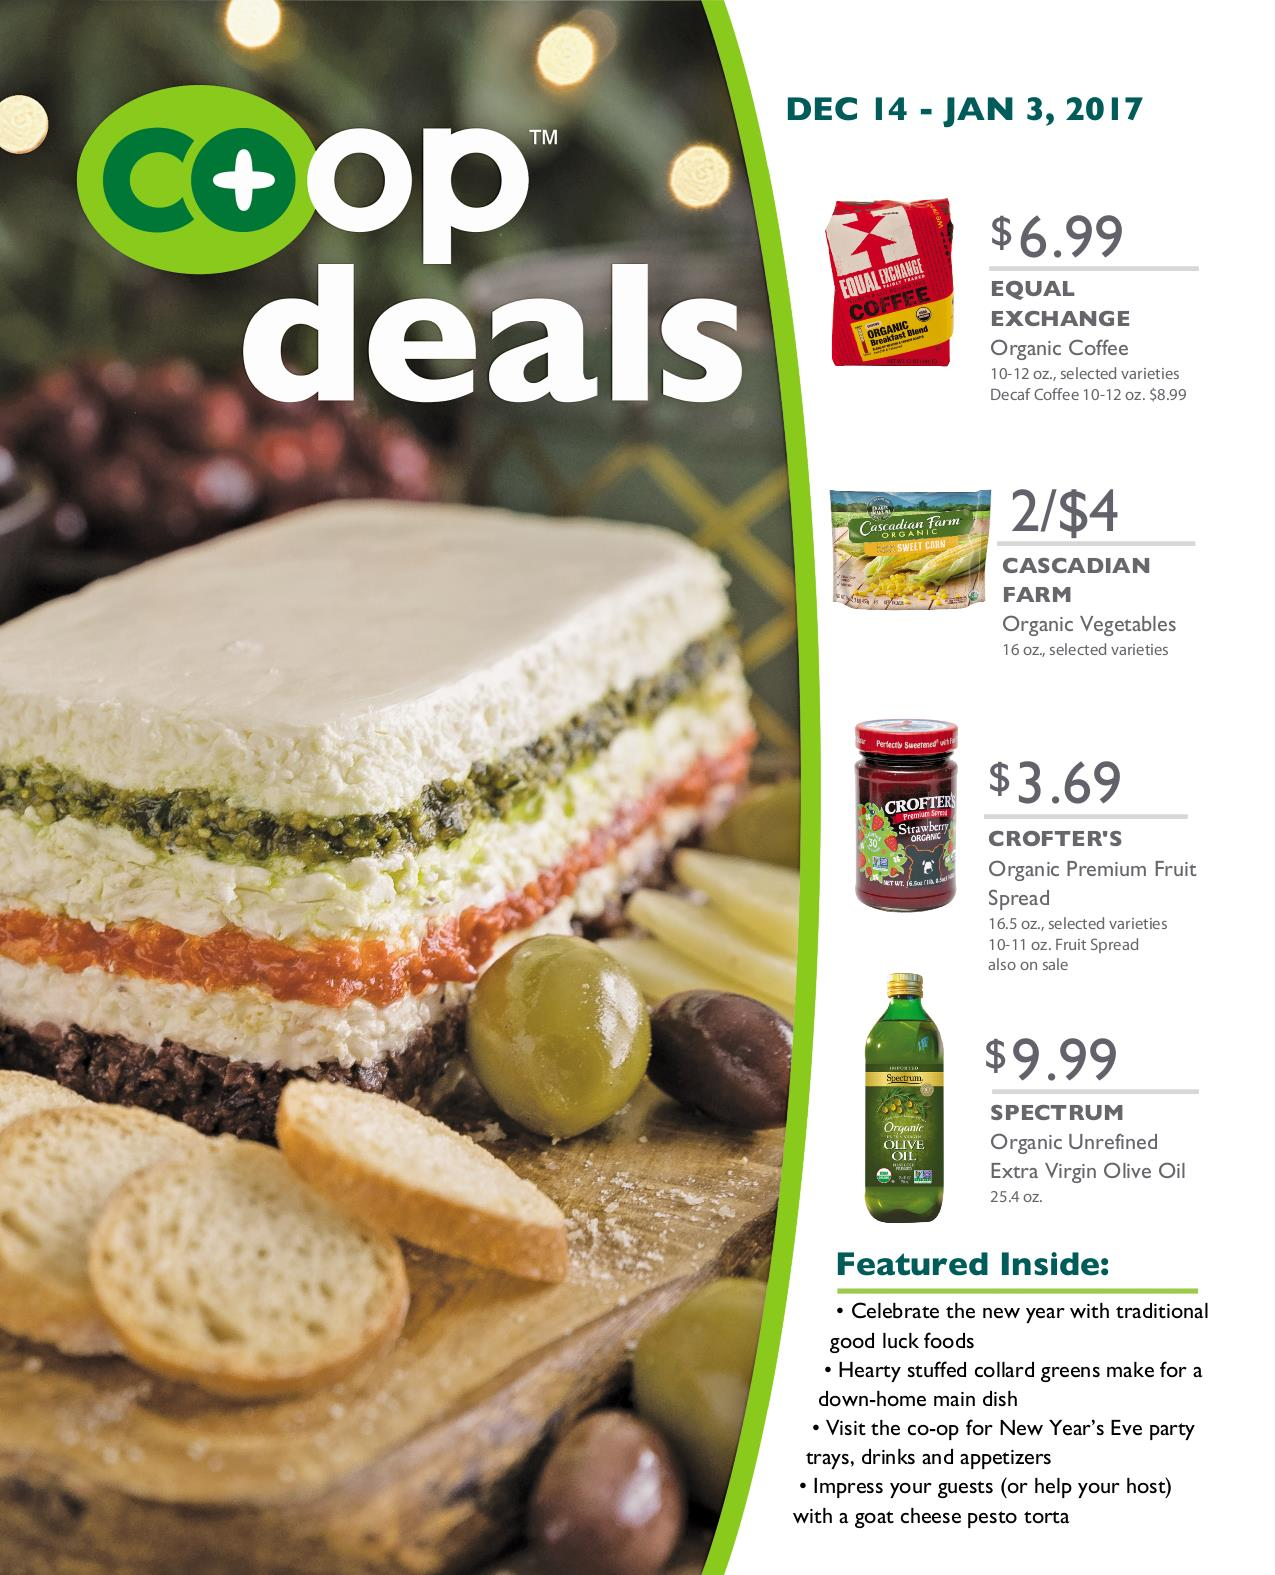 coop_deals_dec_2016_flyer_east_zone_1_2_3_b_page_1